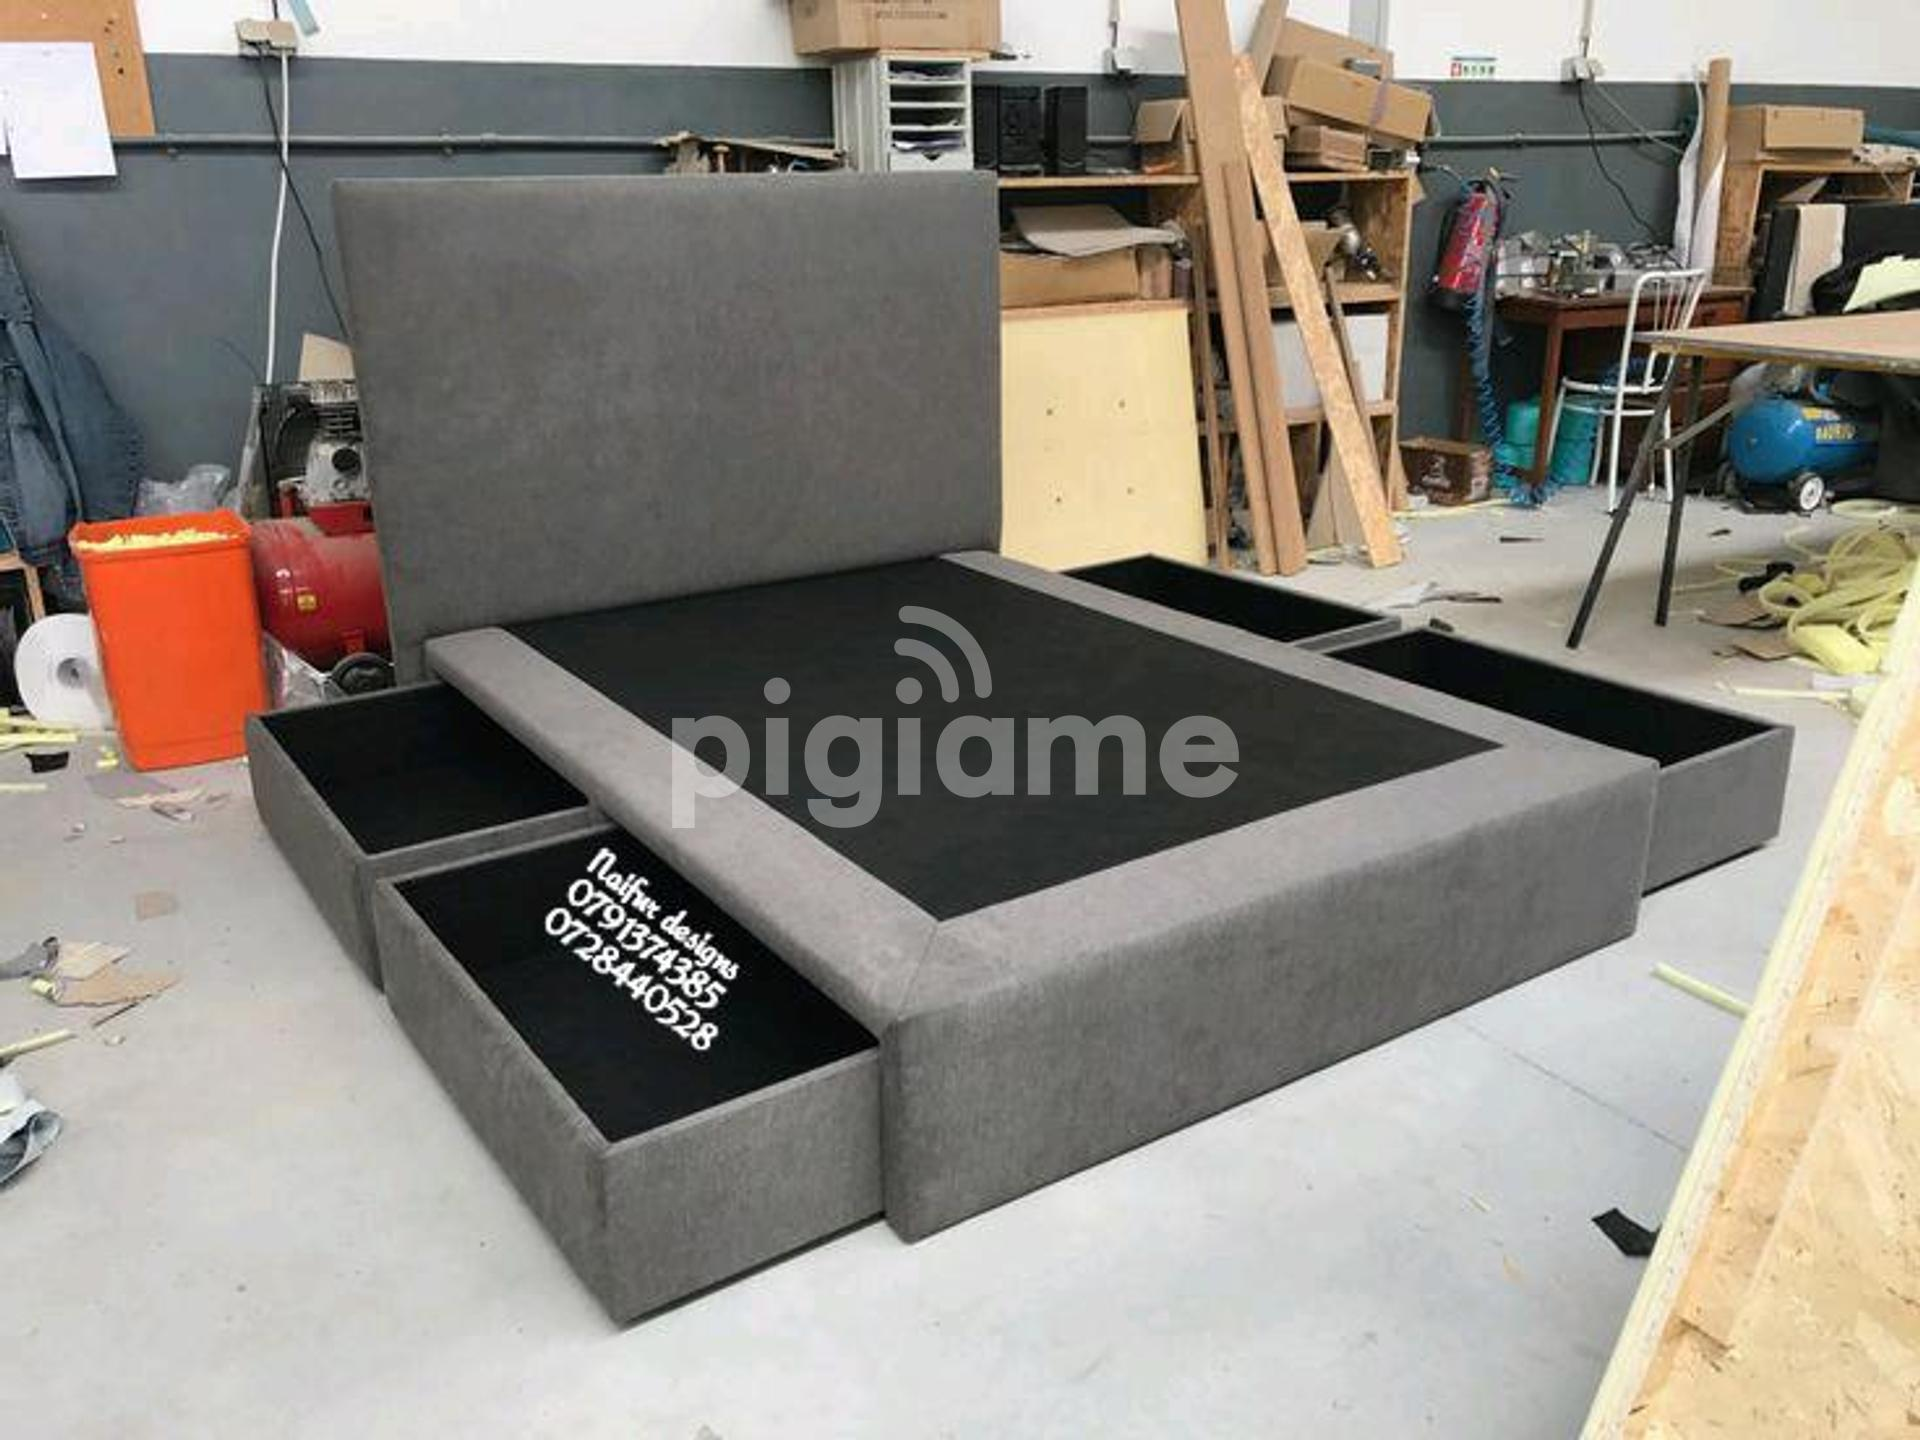 Latest Bed Designs Grey Beds Beds With Under Drawers Beds With Storage Drawers Modern 6 6 Beds In Nairobi Pigiame